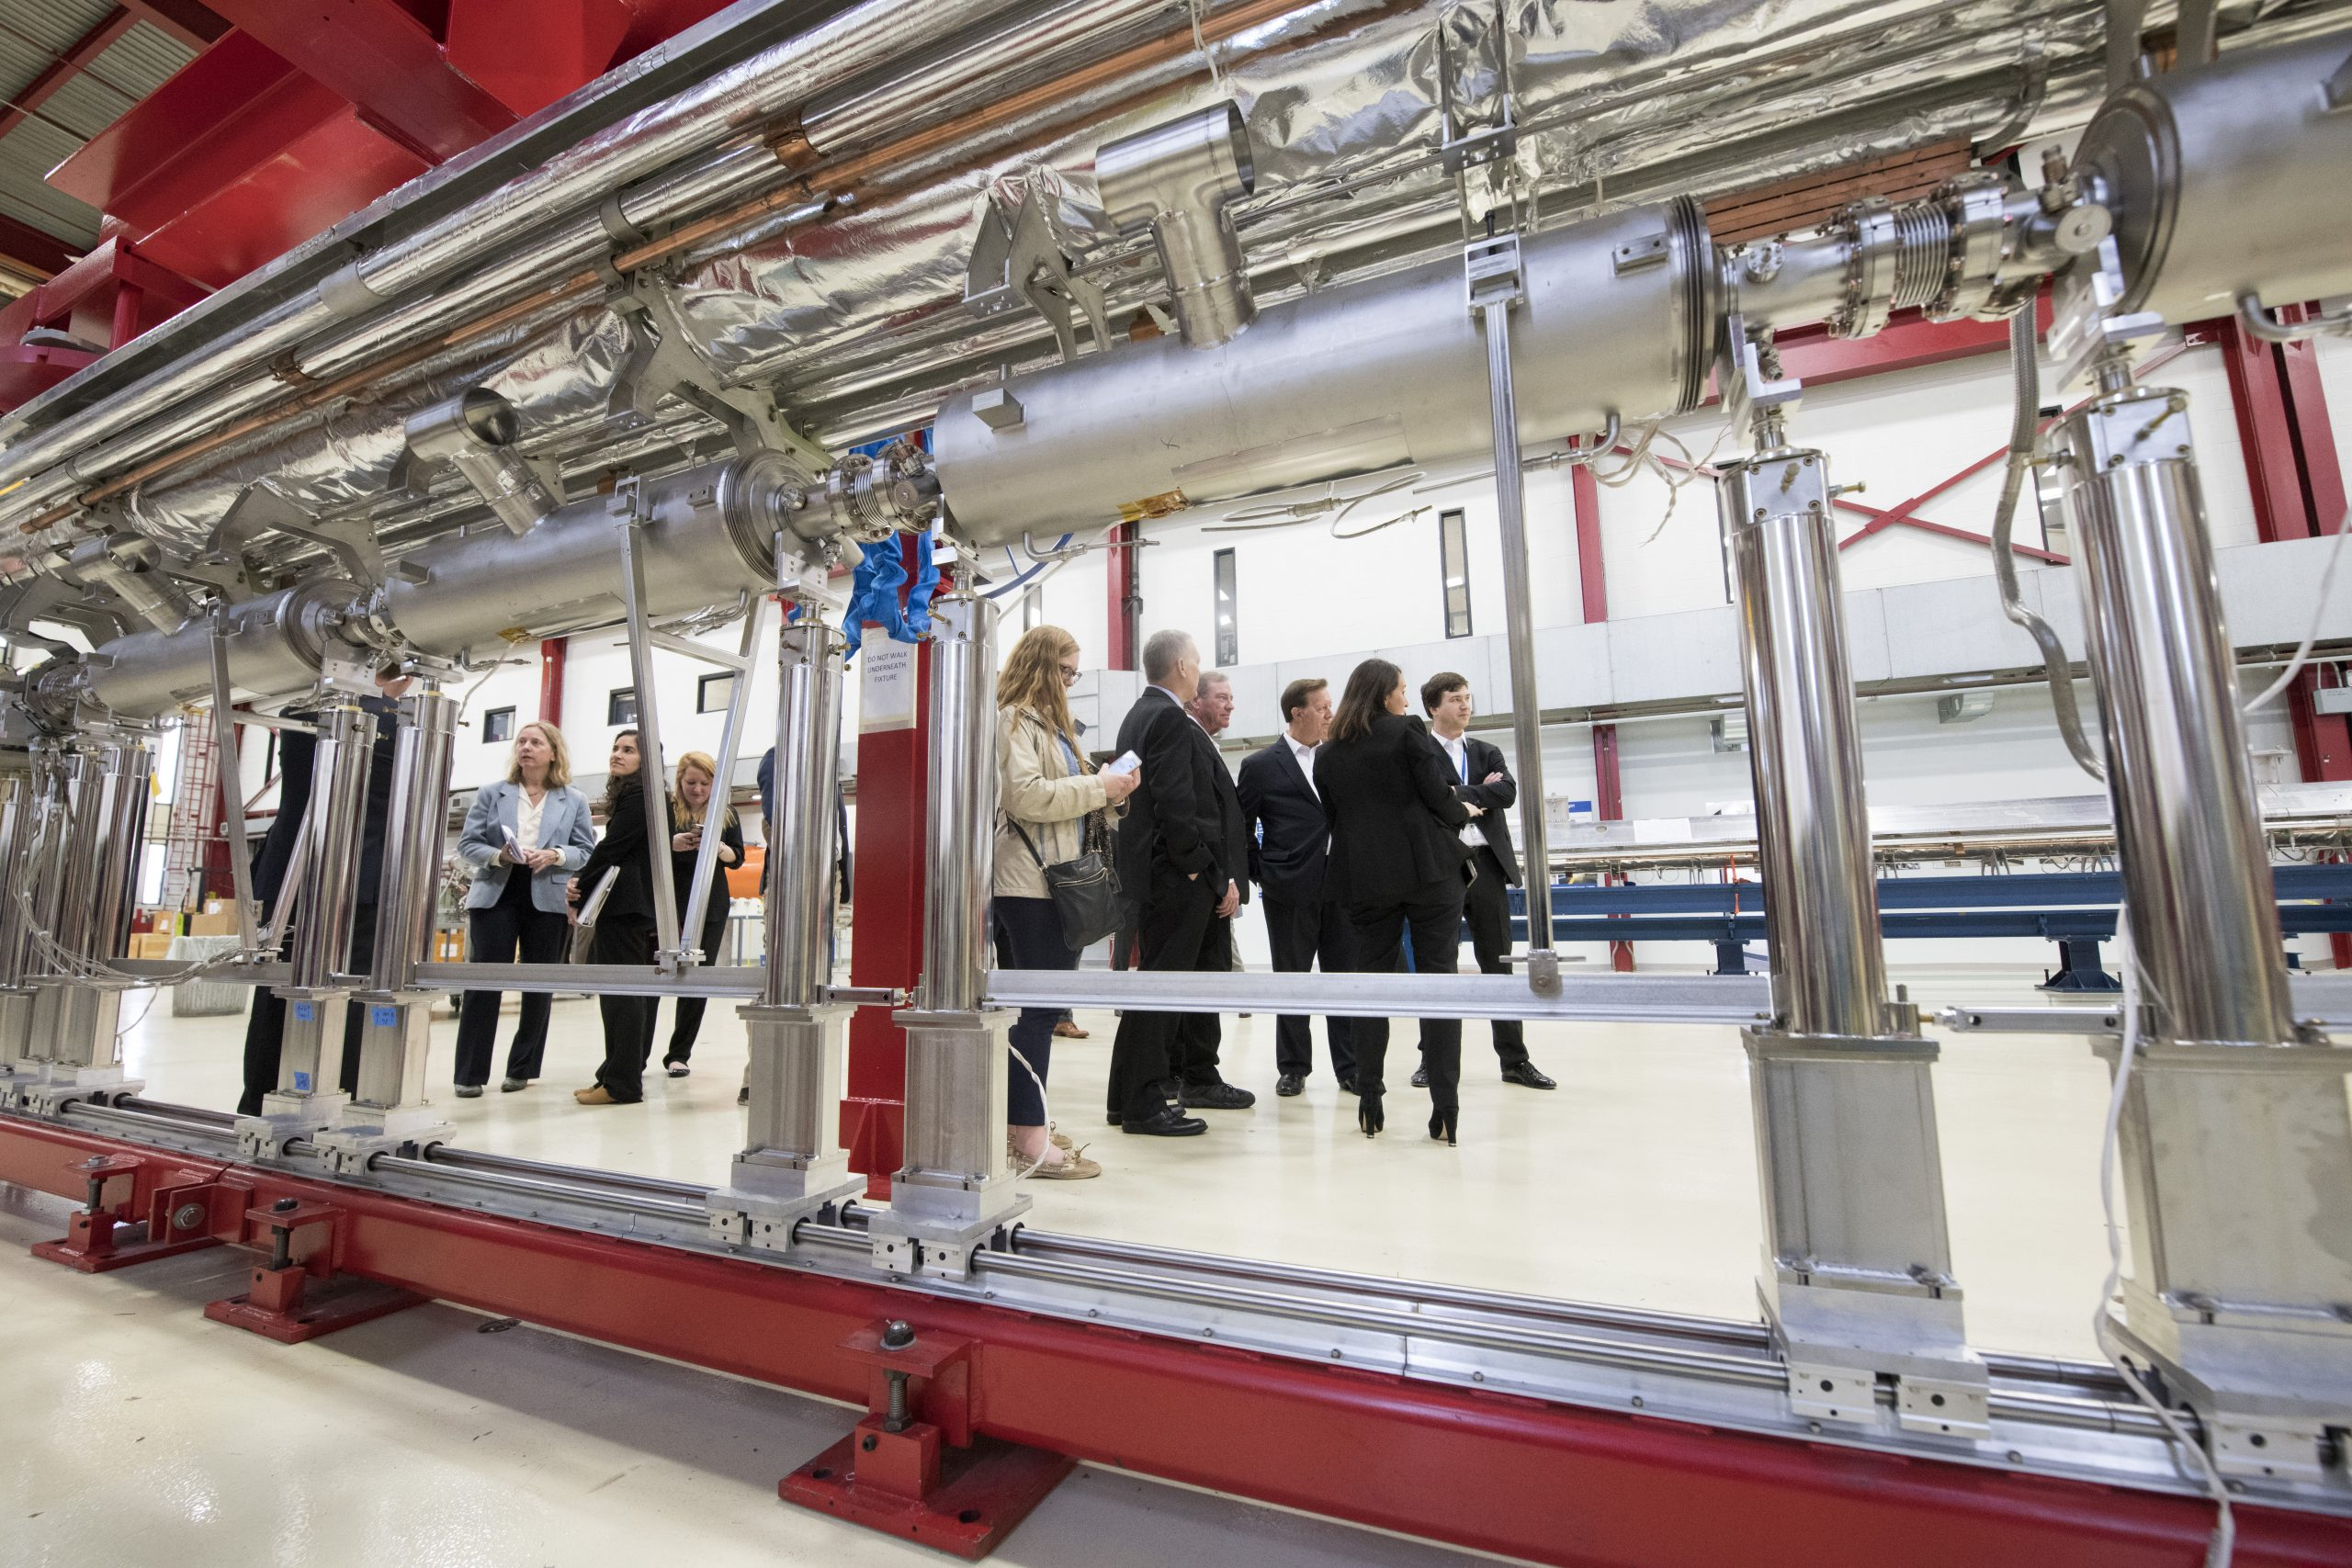 The members of the House Science Committee saw up close the particle accelerator modules that Fermilab is building for the LCLS-II X-ray laser at DOE's SLAC National Accelerator Laboratory. Photo: Reidar Hahn